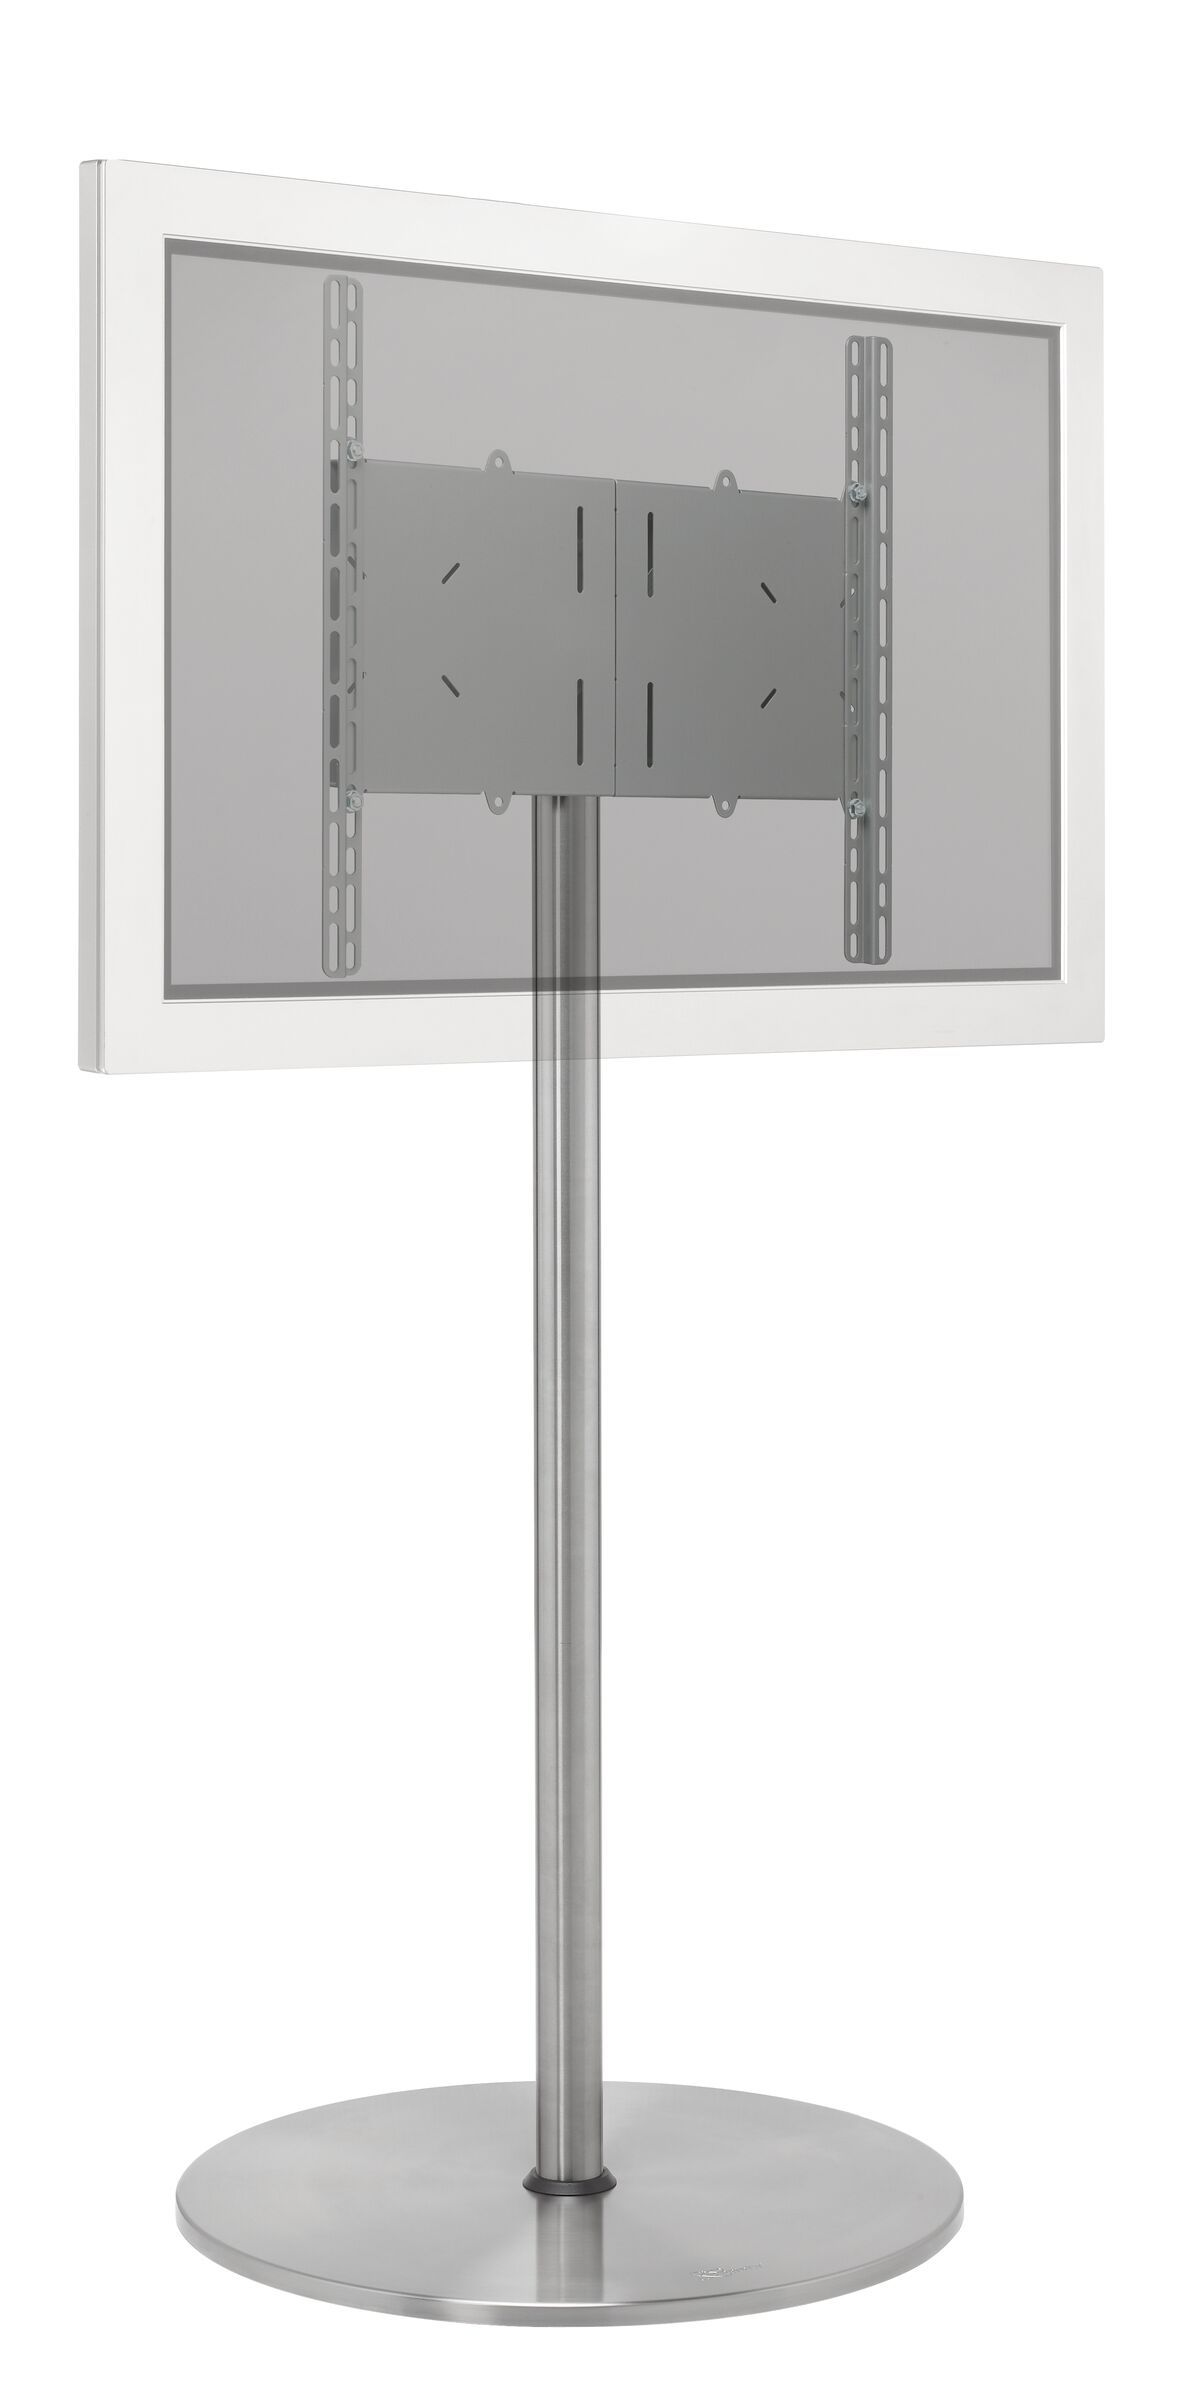 Vogel's PFF 1550 Display floor stand - Application